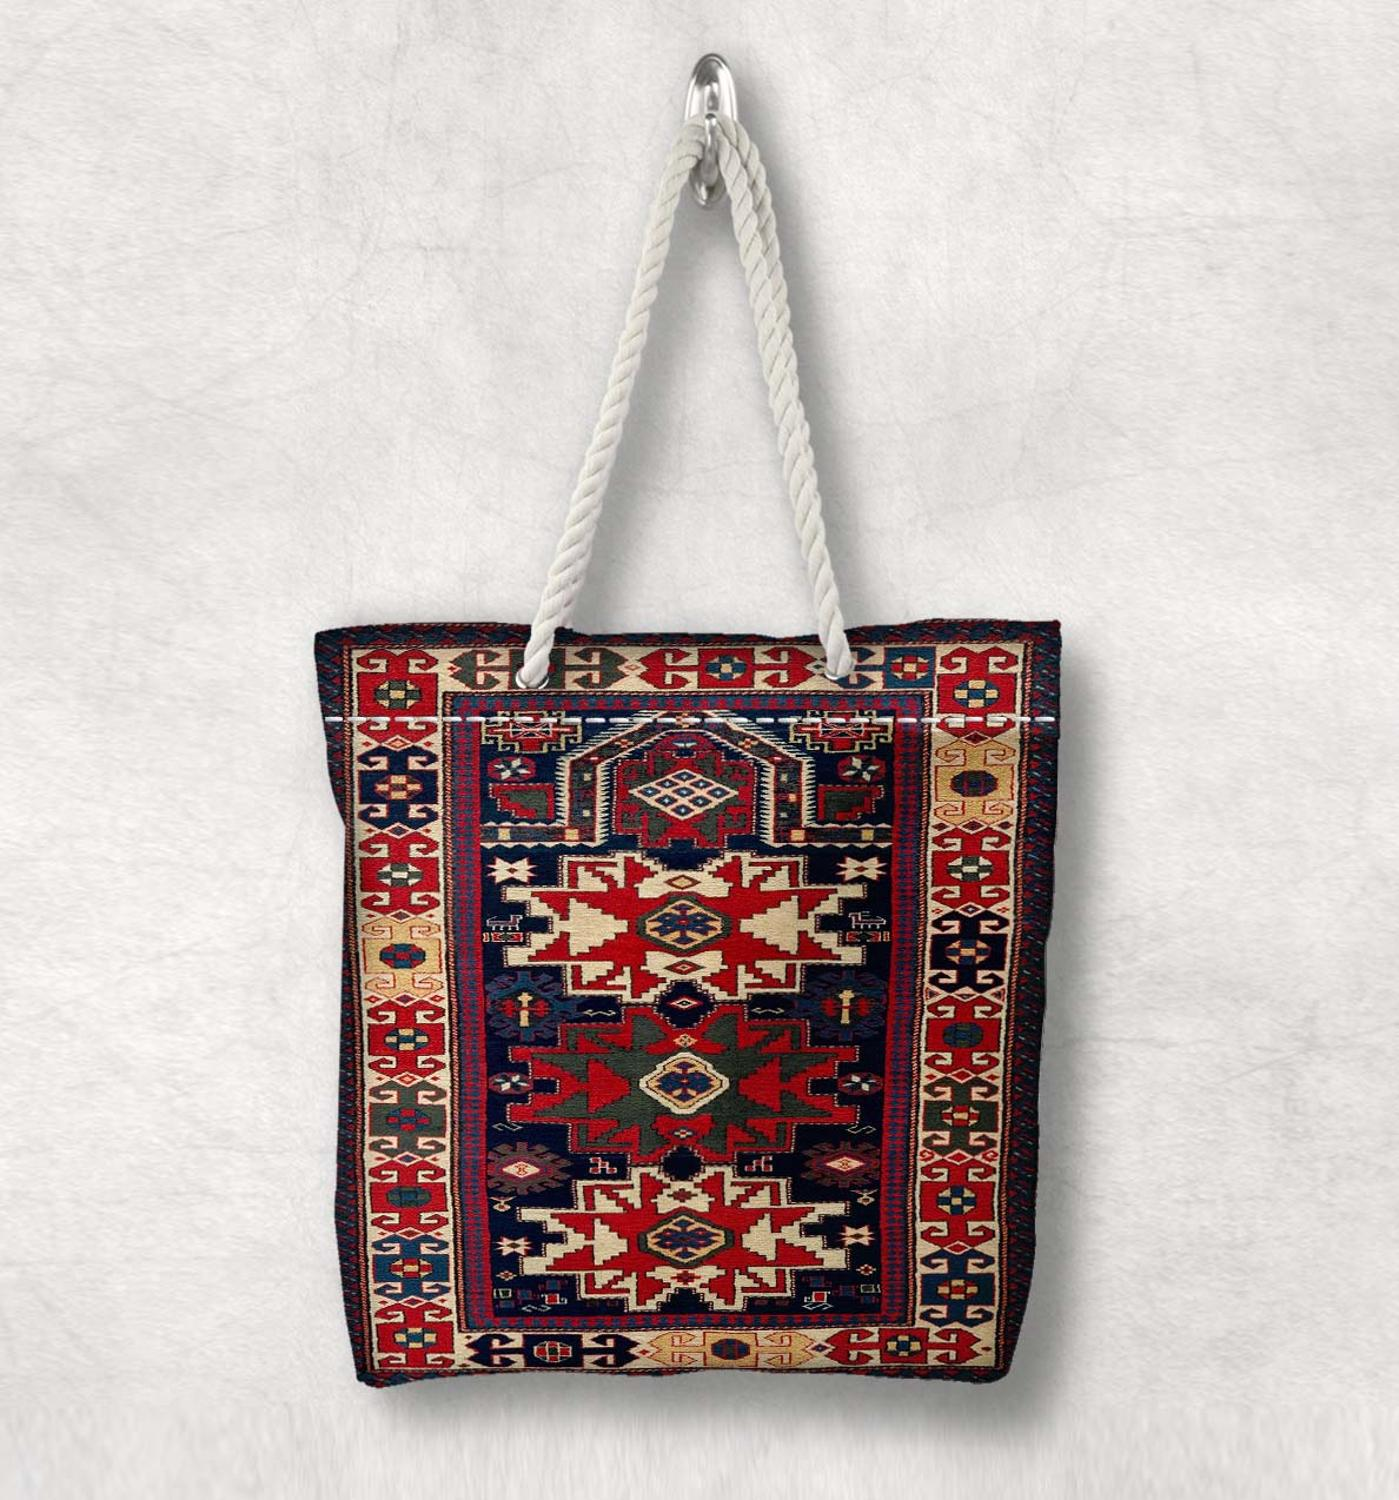 Else Red Blue Anatolia Antique Kilim Design Fashion White Rope Handle Canvas Bag Cotton Canvas Zippered Tote Bag Shoulder Bag